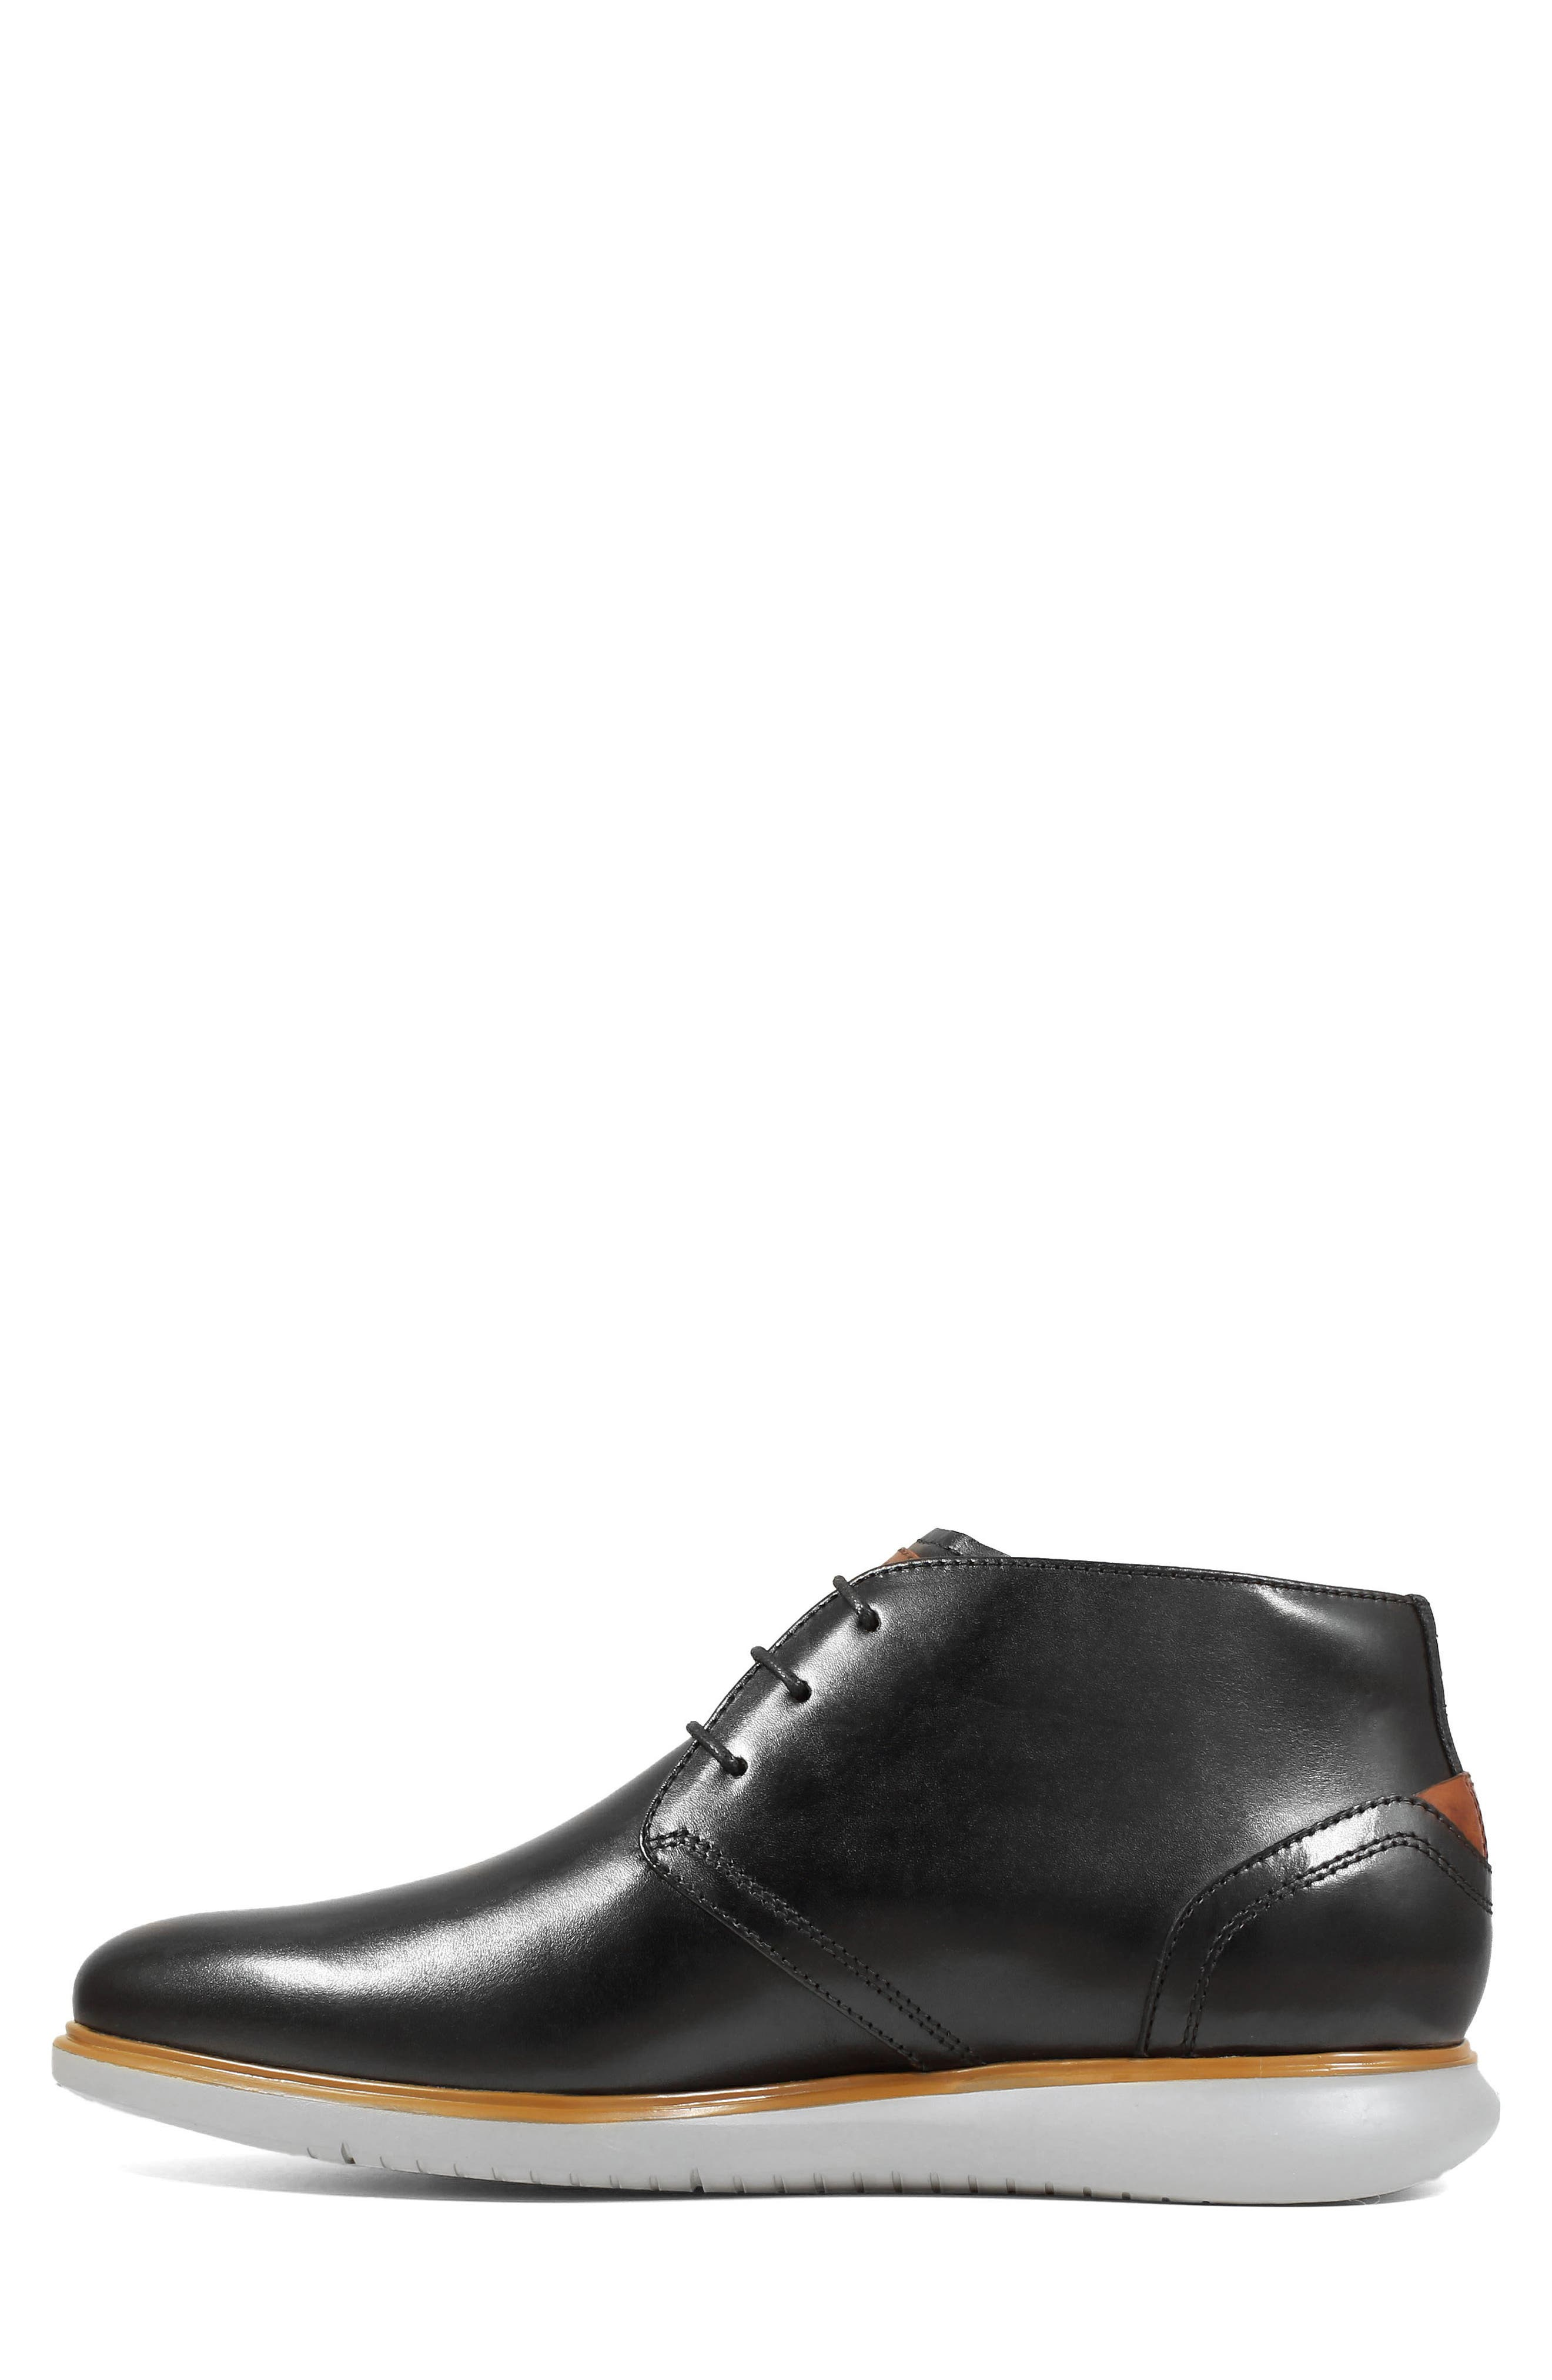 FLORSHEIM,                             Fuel Chukka Boot,                             Alternate thumbnail 8, color,                             BLACK LEATHER